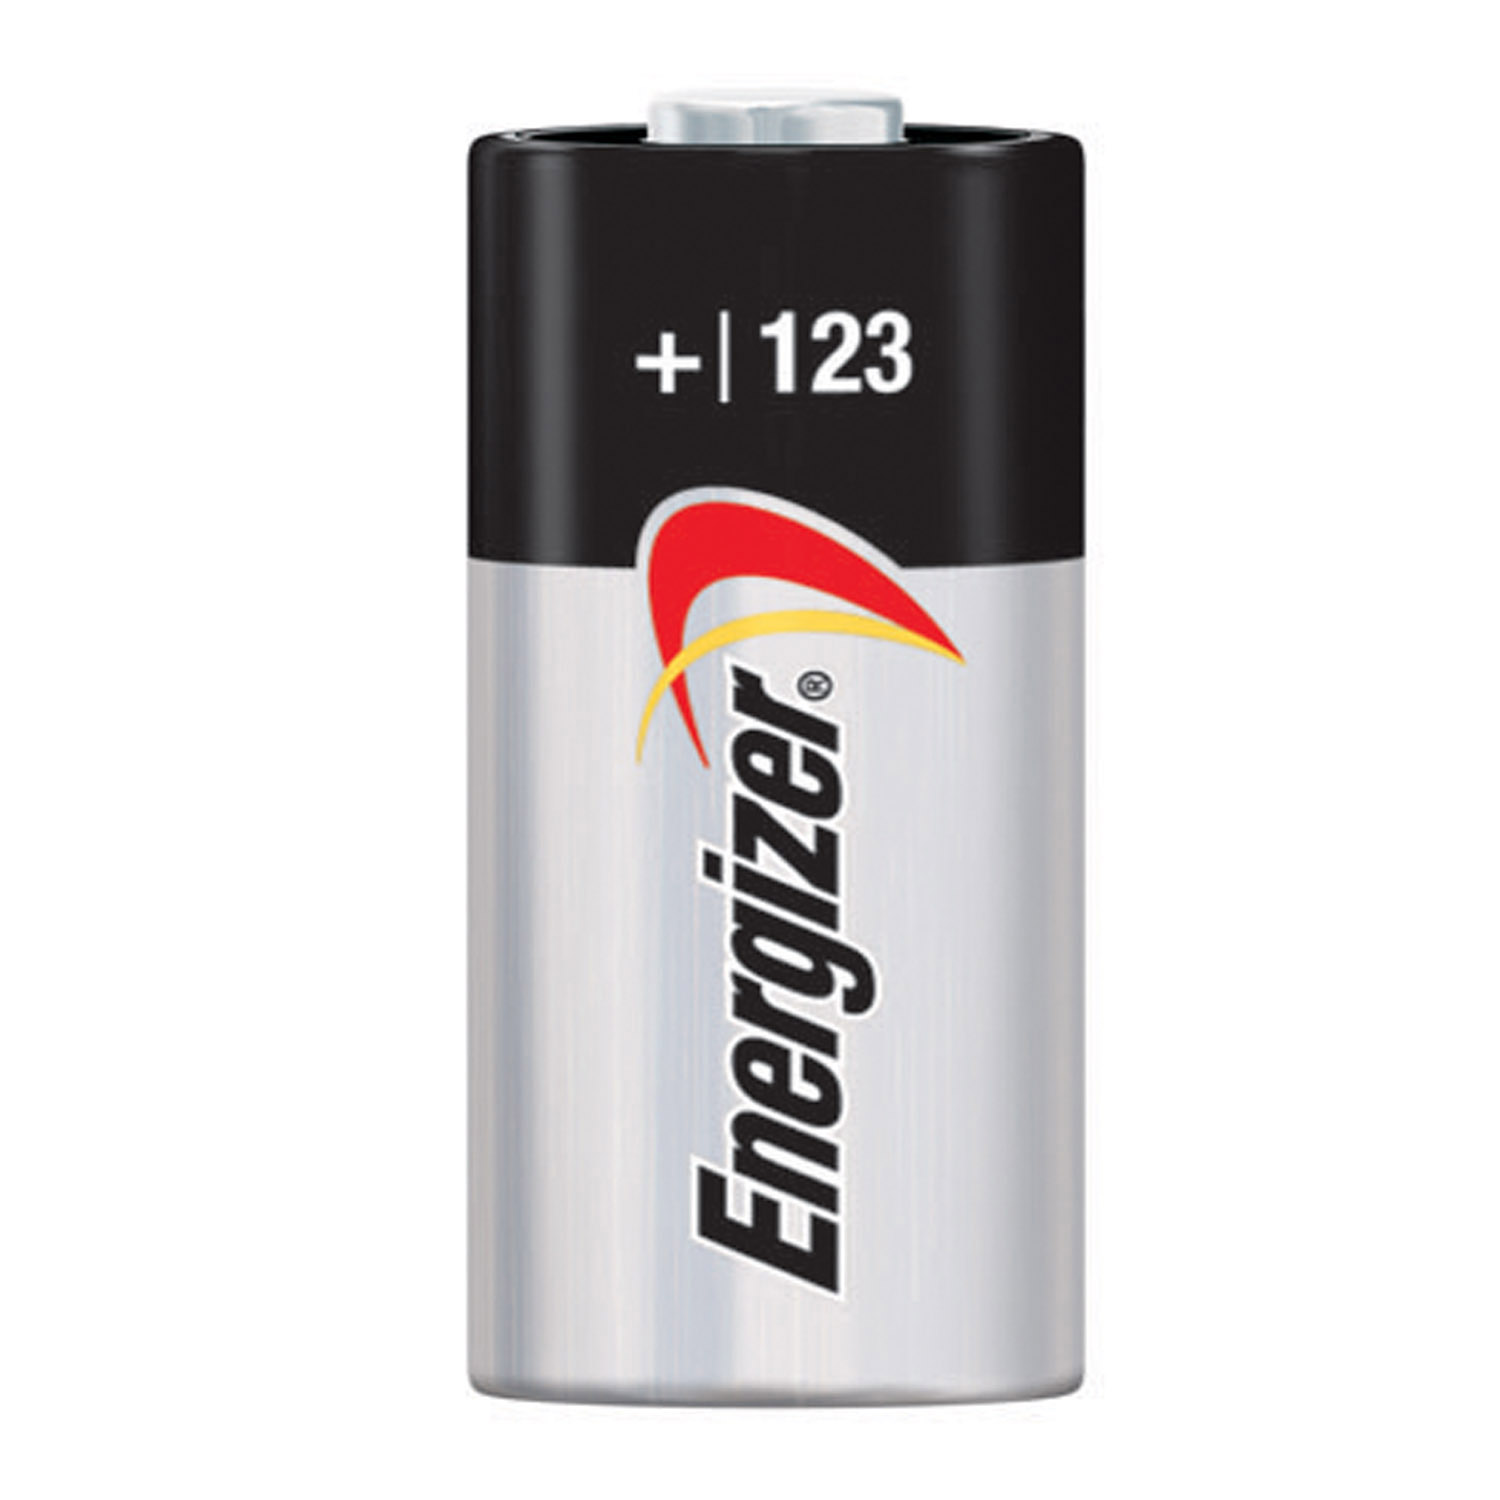 Energizer 3V Lithium CR123A Batteries (6 Pack)